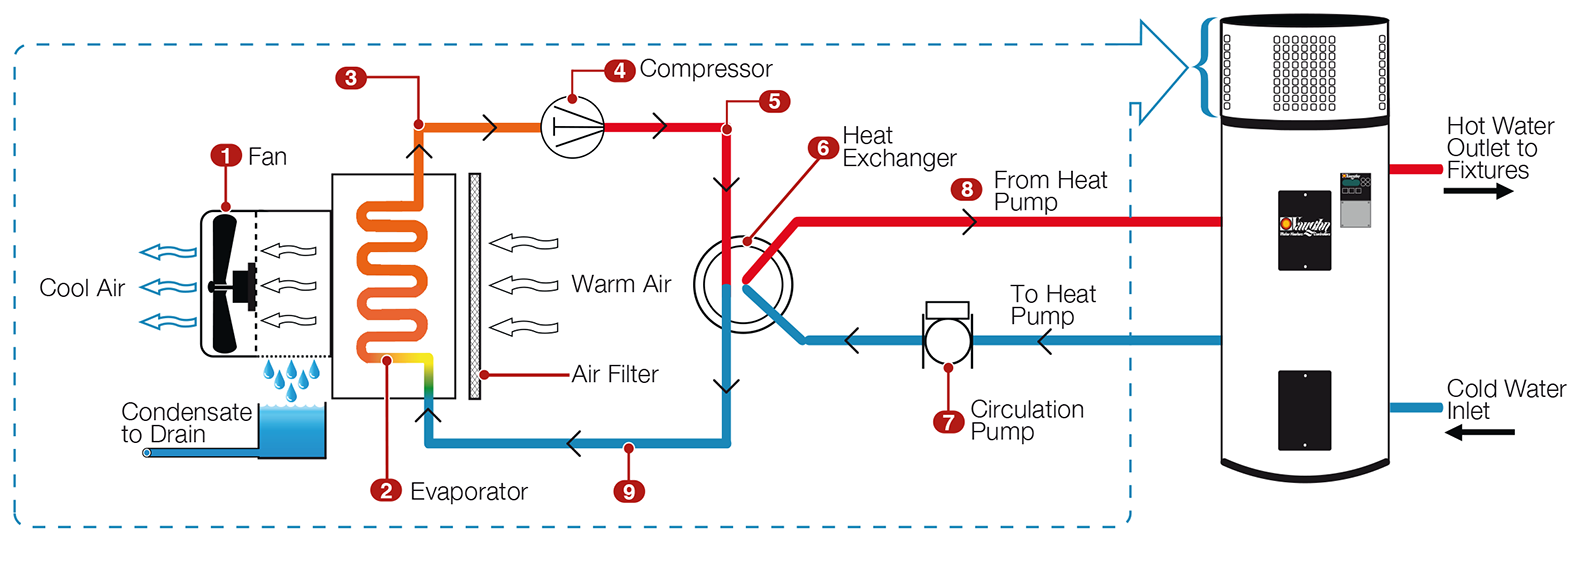 Internal diagram indirect water heater electrical work wiring high efficiency electric water heater vaughn rh vaughncorp com hot water heater piping diagram indirect water heater piping diagram ccuart Image collections